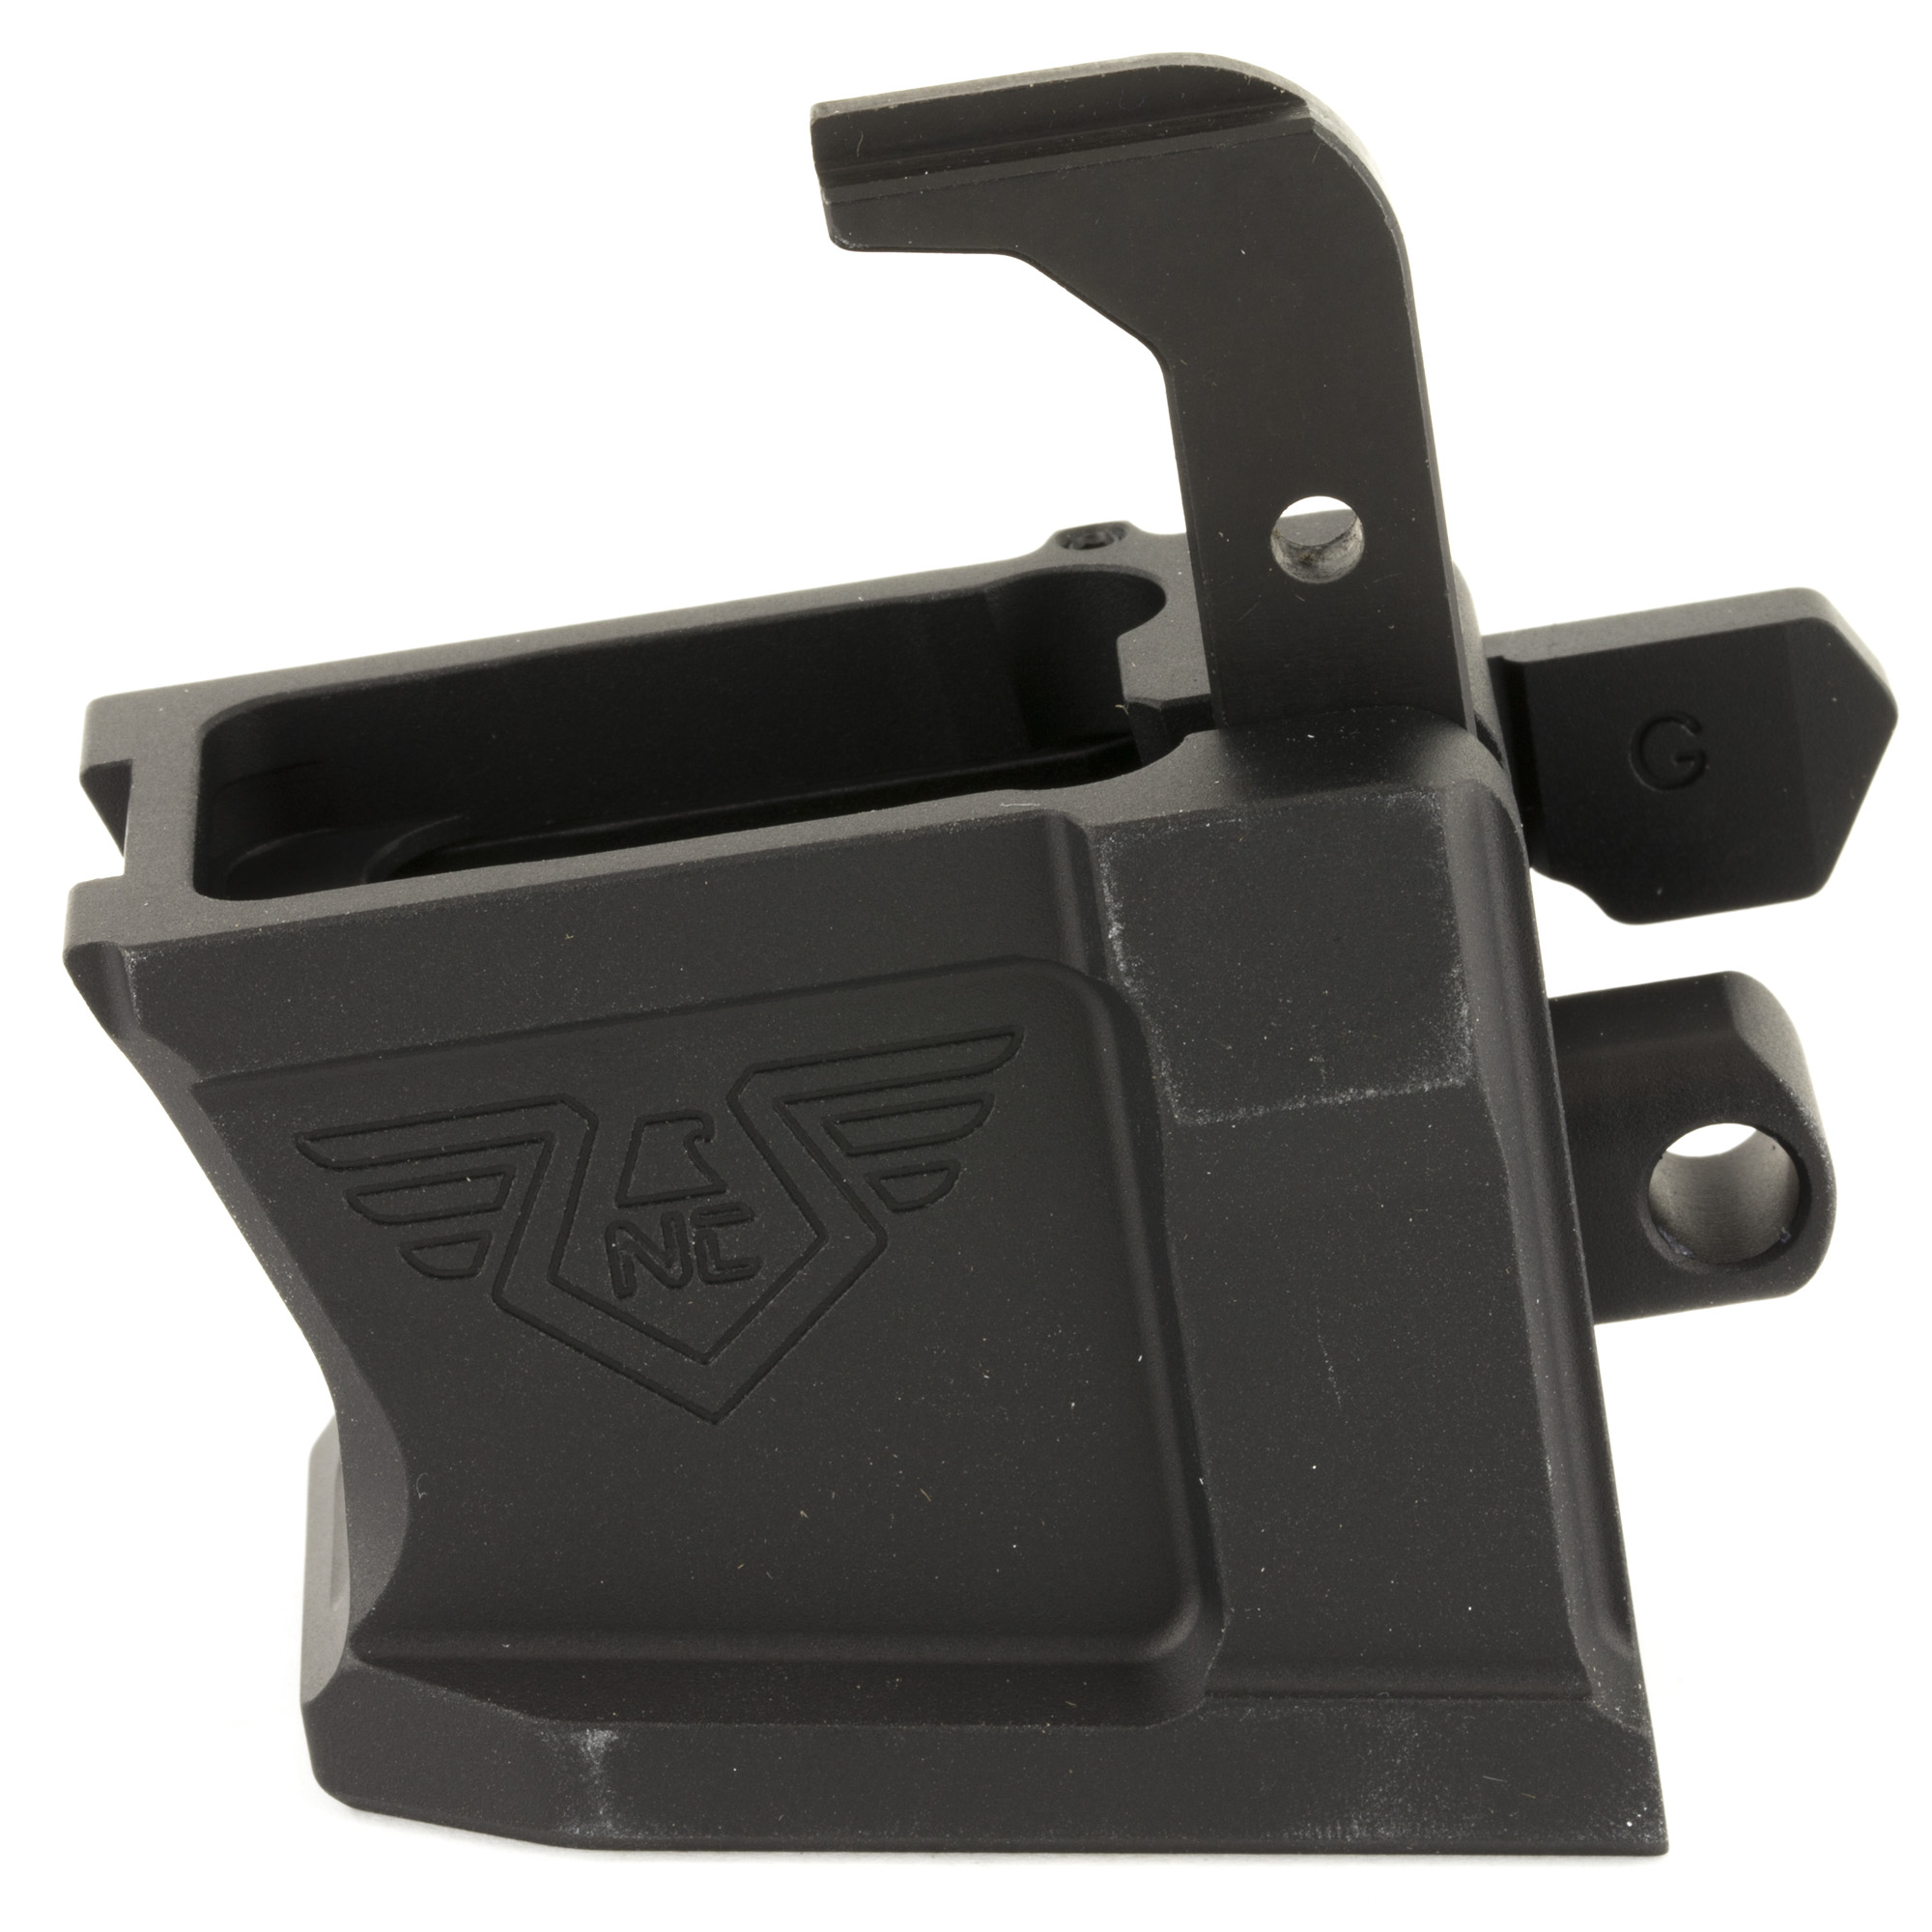 All NC-PCC magwells are cut from 7075 billet and include the necessary magazine release and bolt catch lifter for the respective magazine type. No fitting required - just pull the pin and swap out the magwell.